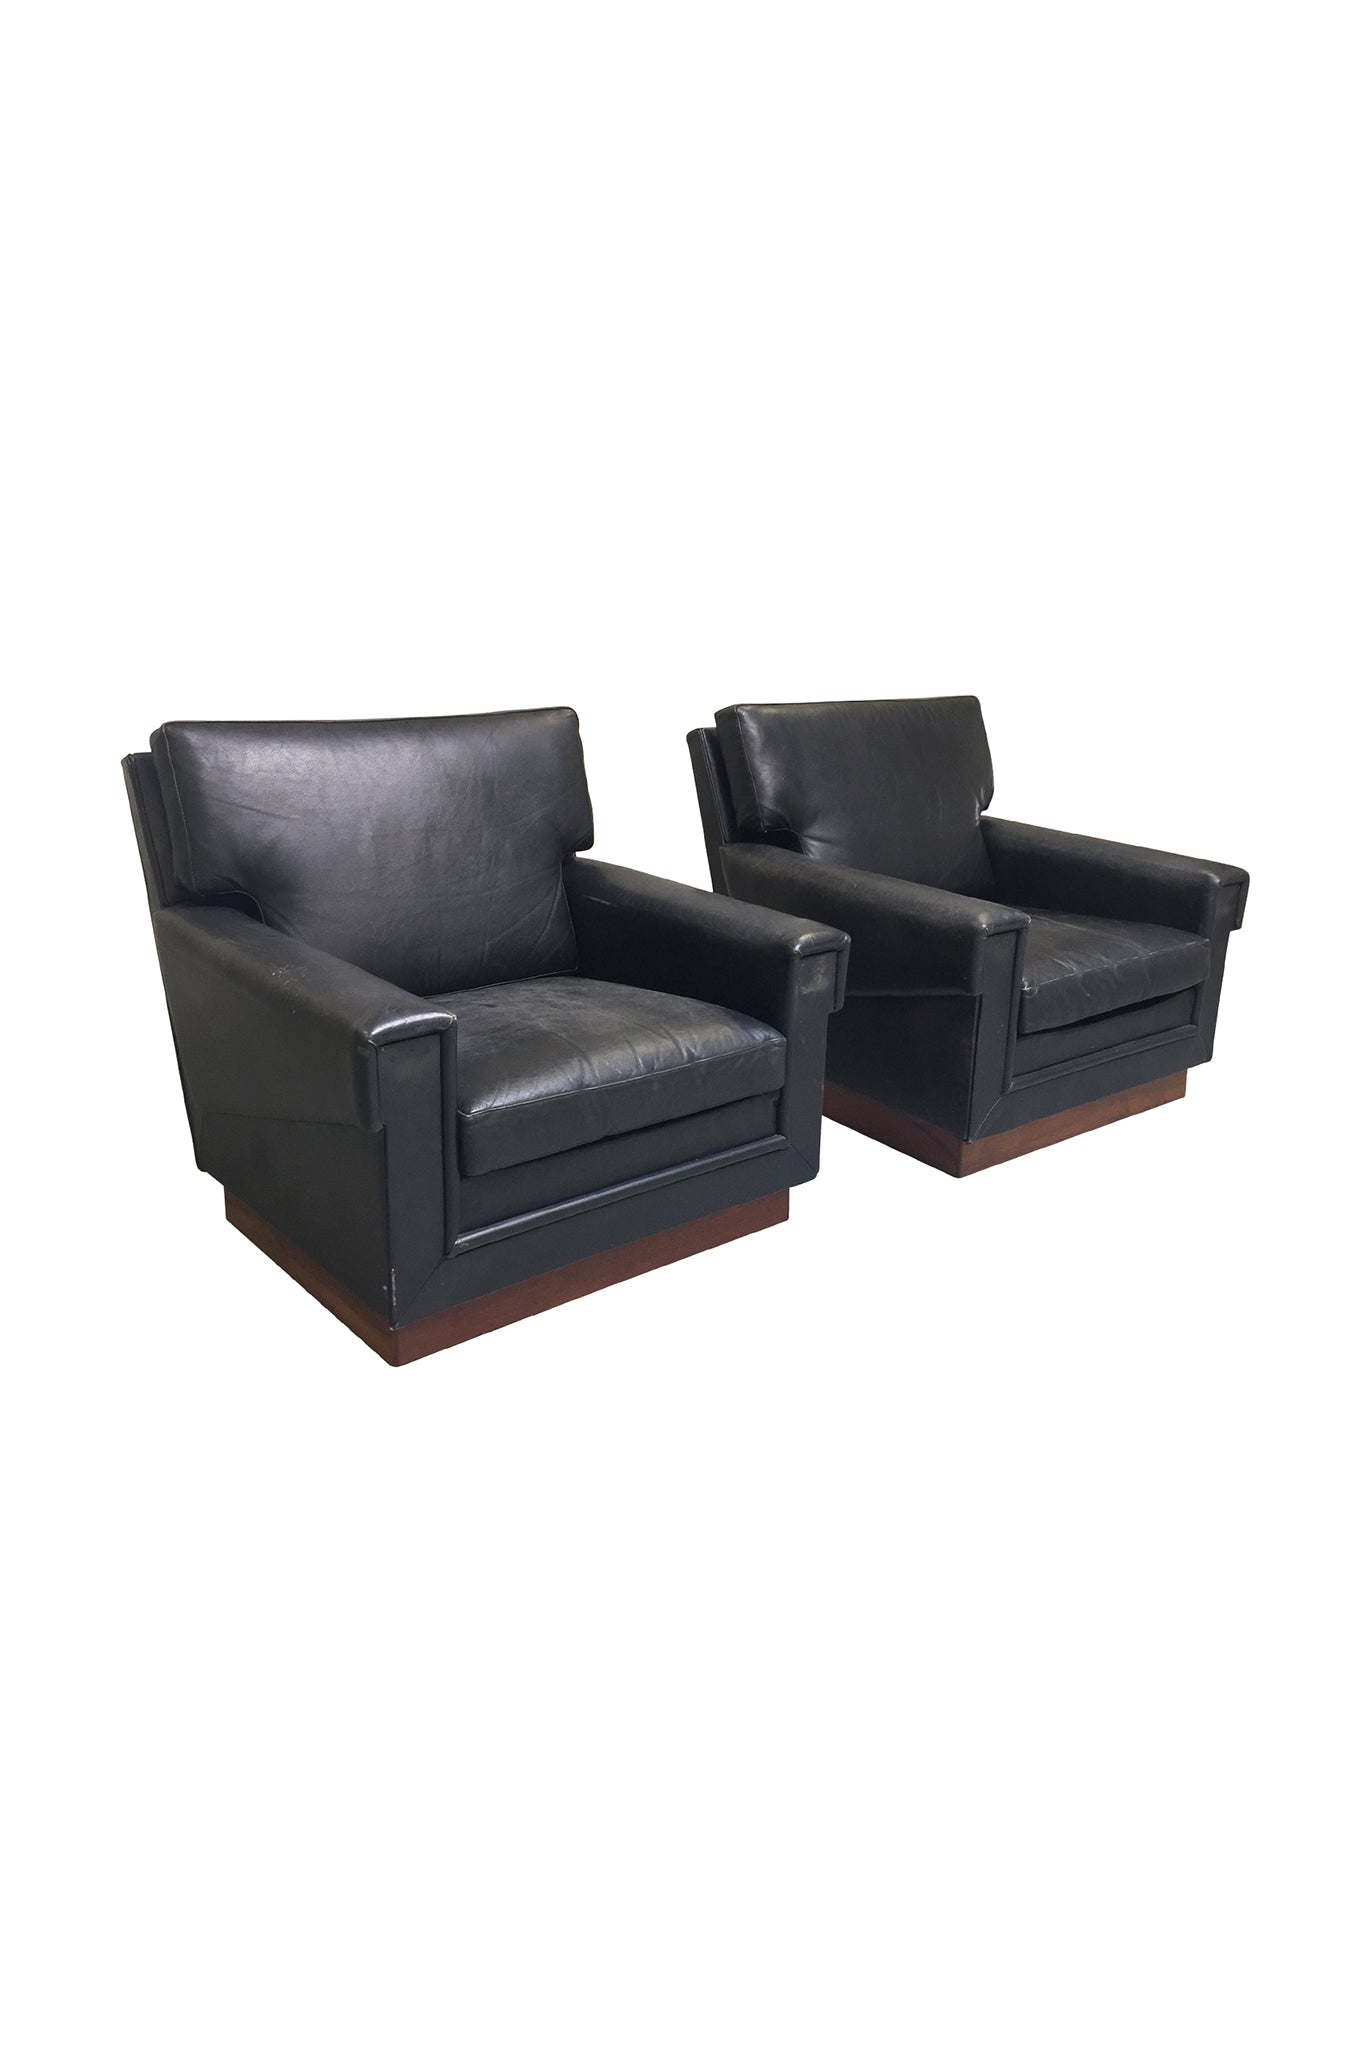 Surprising Seating Tagged Lounge Chair Cafiero Select Home Uwap Interior Chair Design Uwaporg